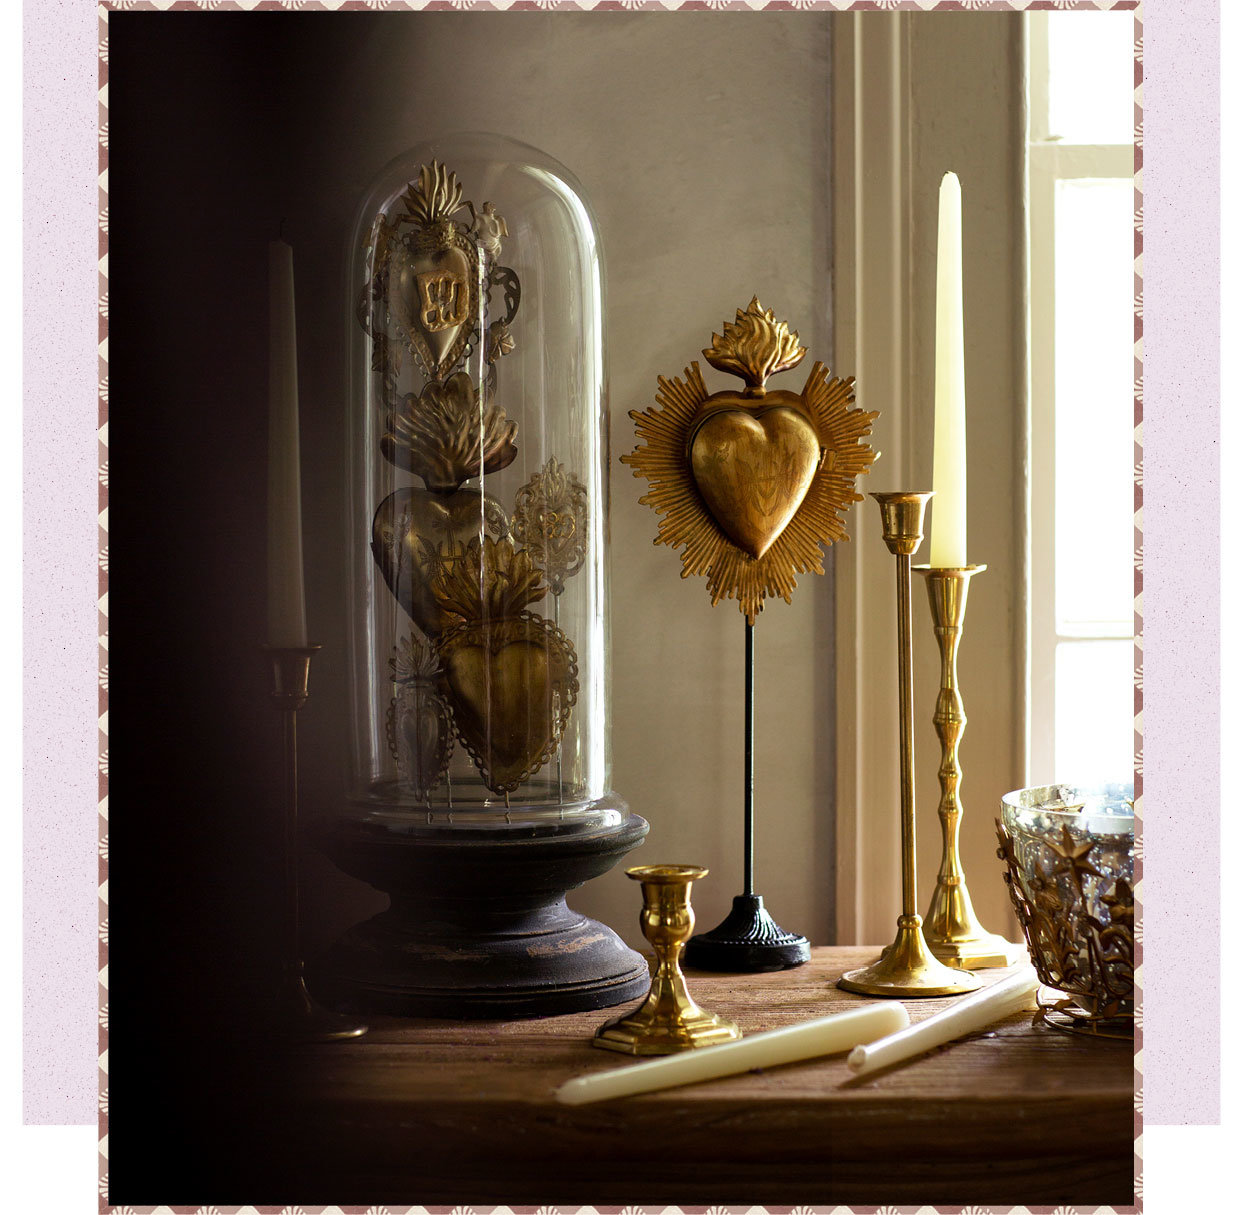 Crowns and Gold Hearts in Cloches